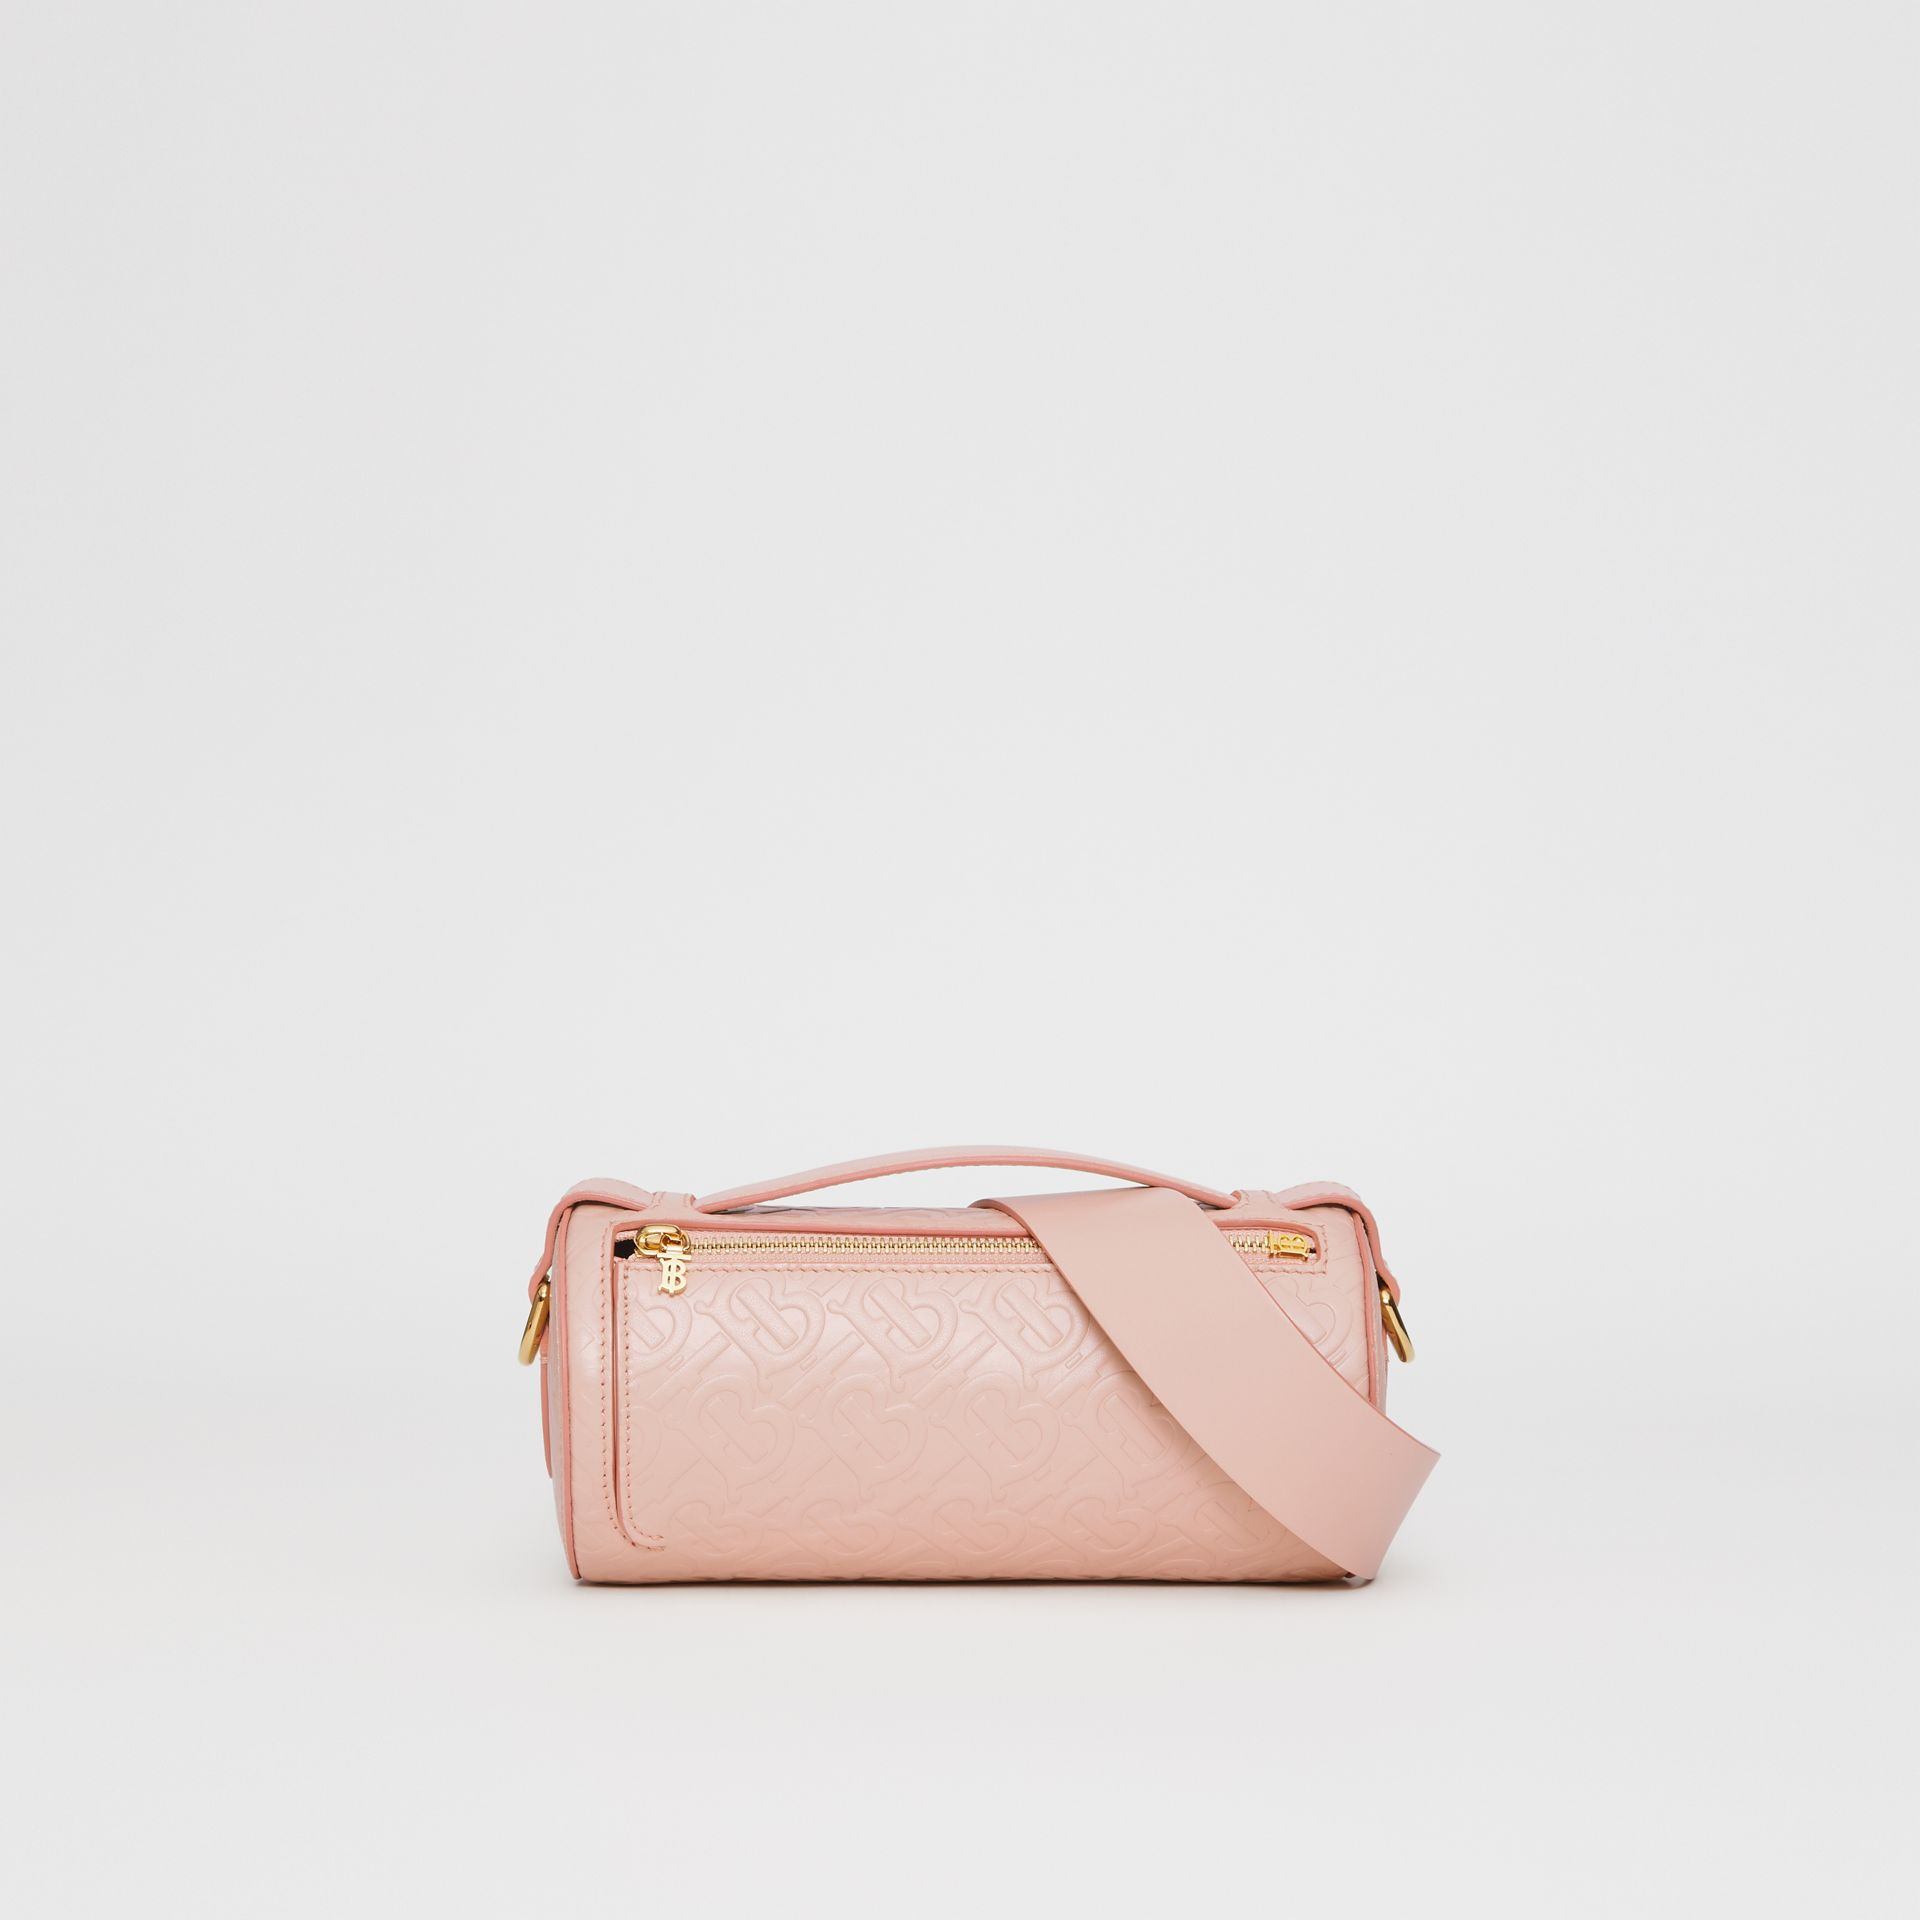 Sac The Barrel en cuir Monogram (Beige Rose) - Femme | Burberry Canada - photo de la galerie 0